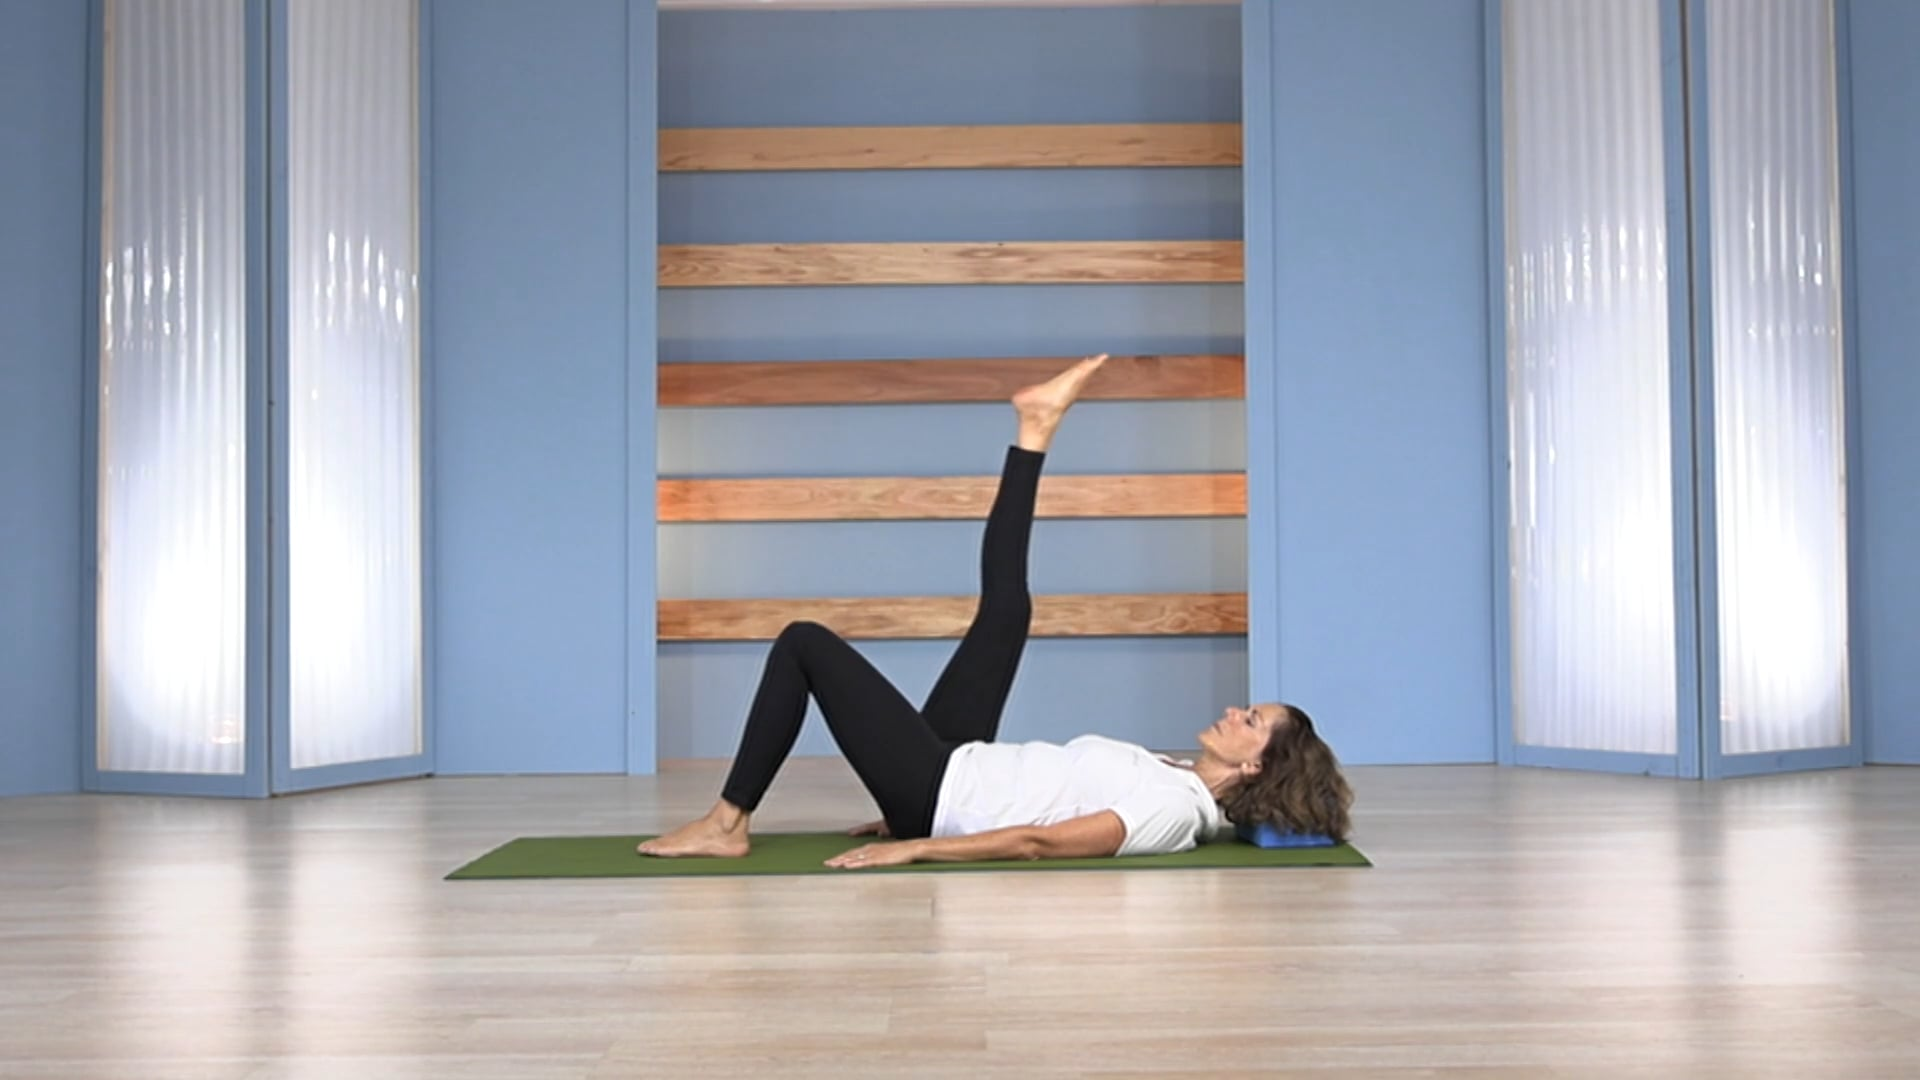 Gentle Core Strength: Strengthen/Lengthen the Core Muscles through Back Lying Exercises